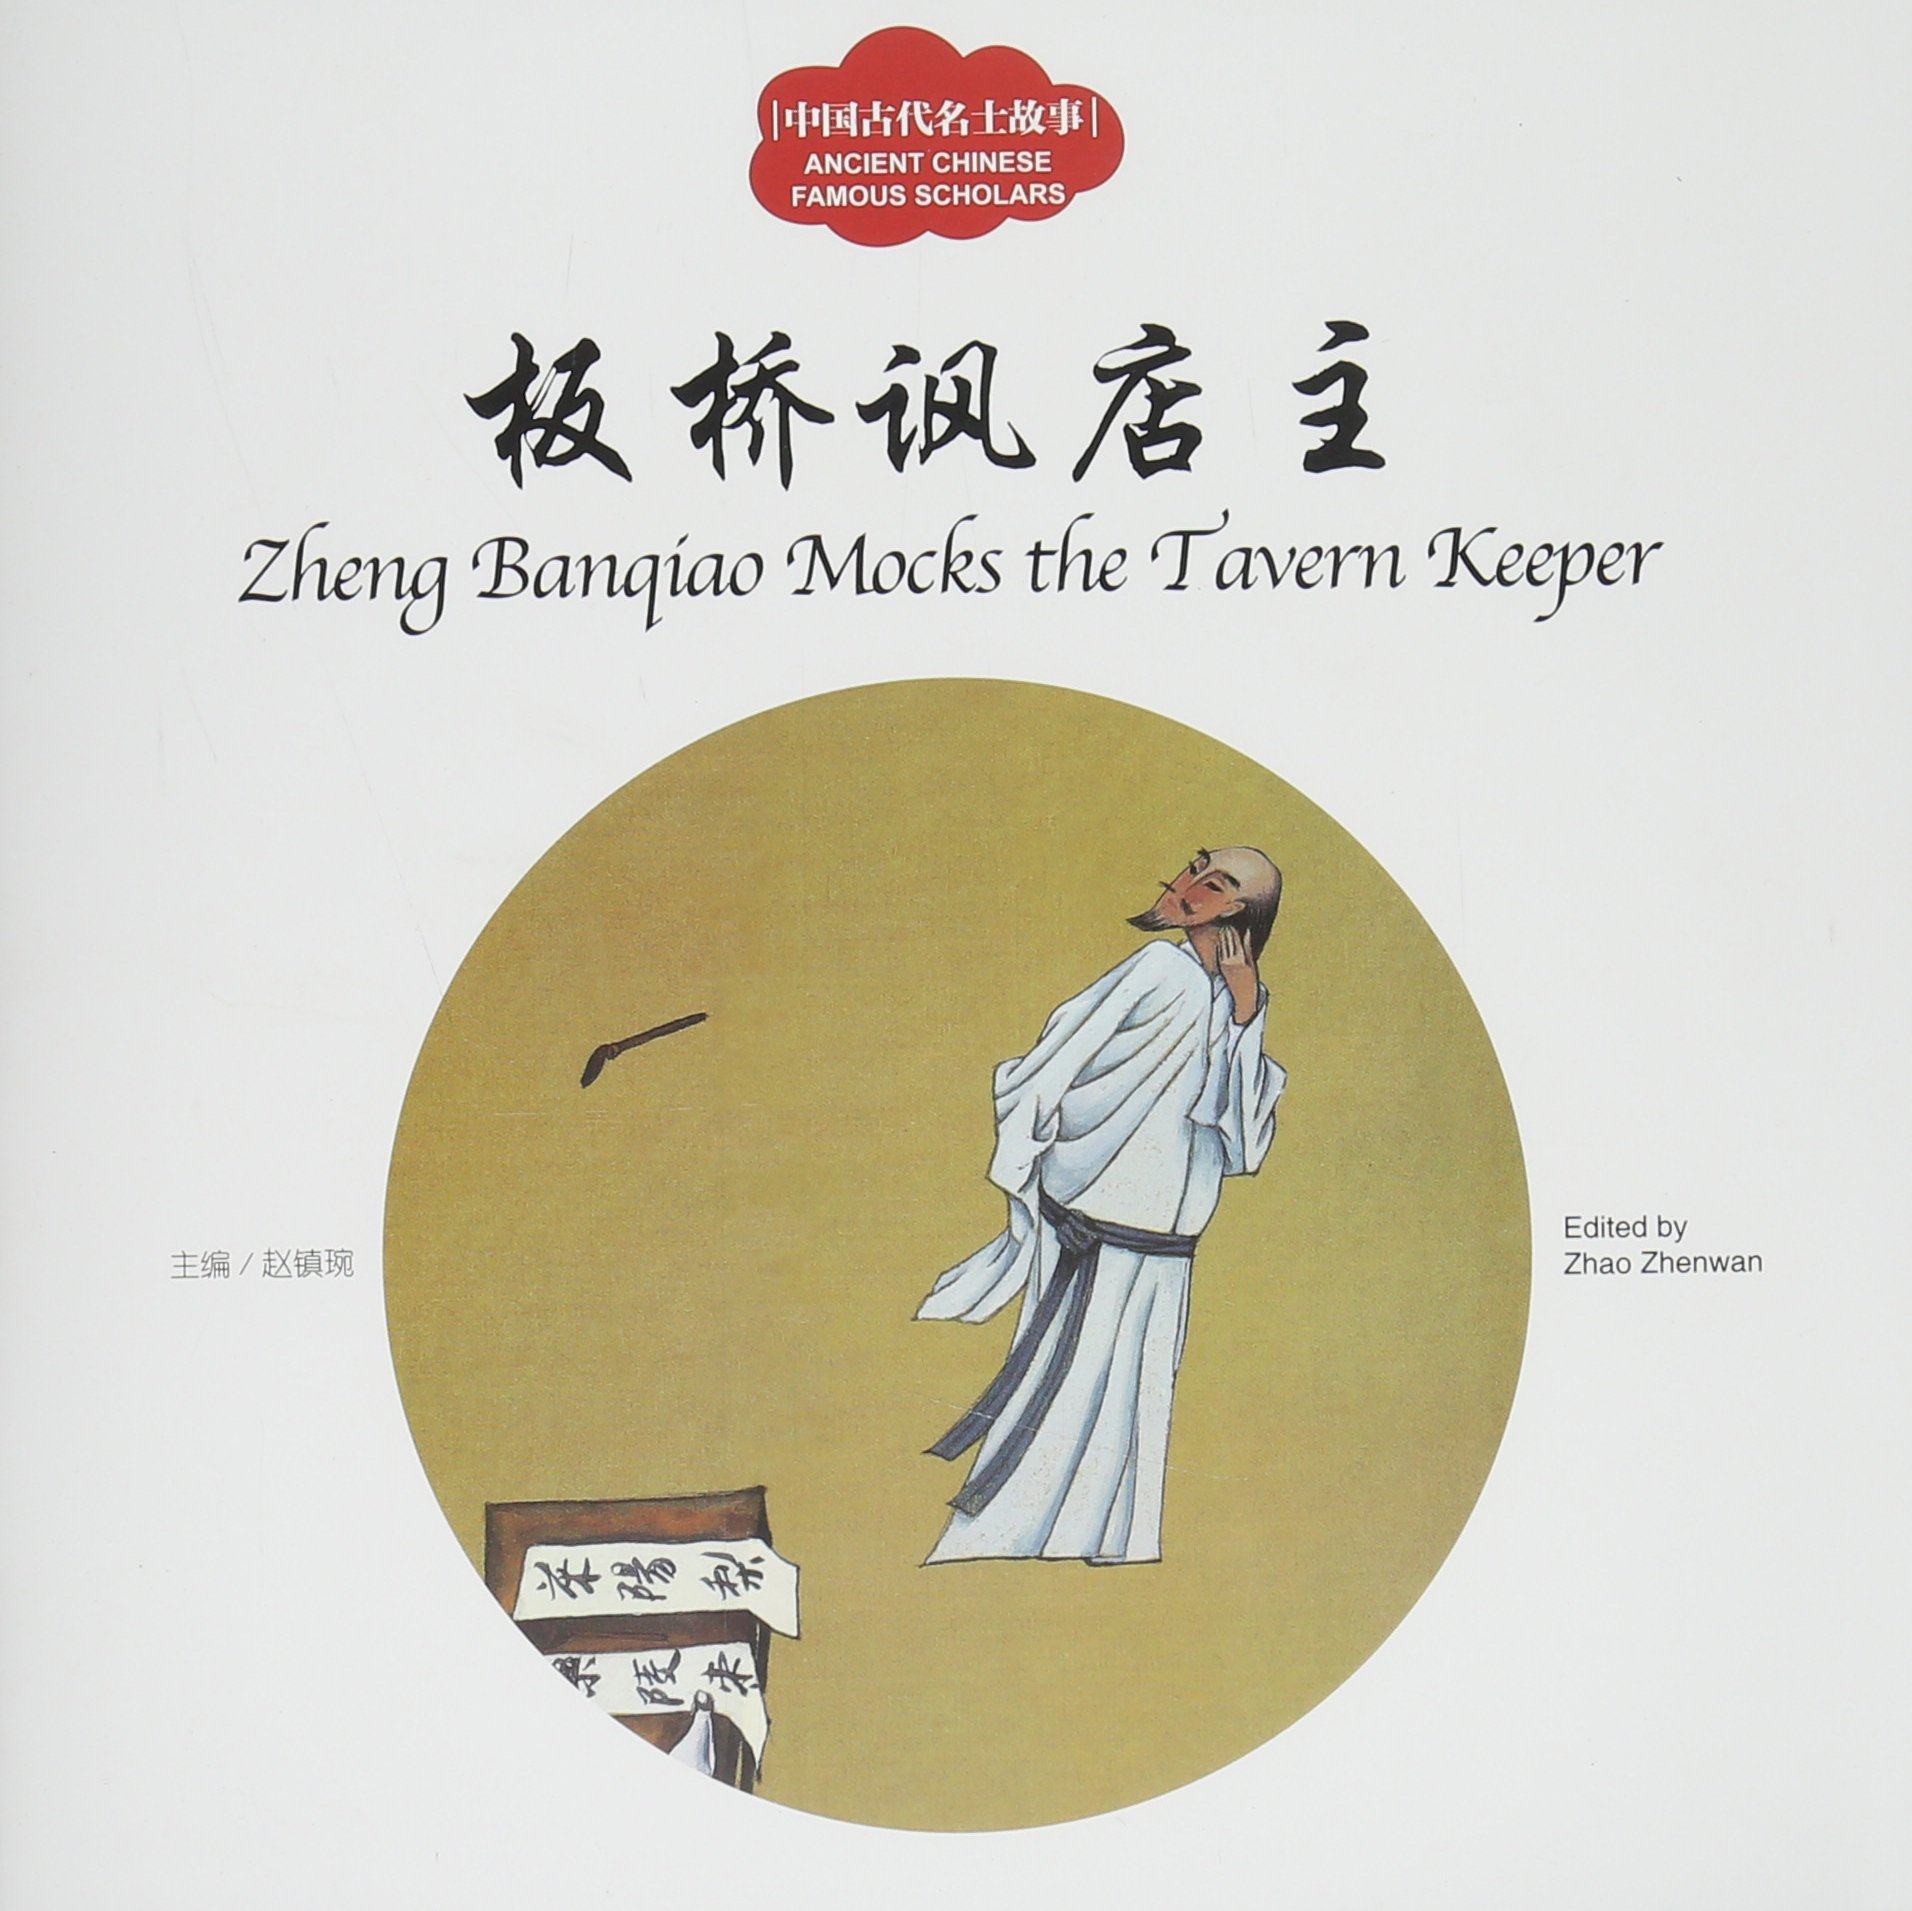 Zheng Banqiao Mocks the Tavern Keeper - First Books for Early Learning Series